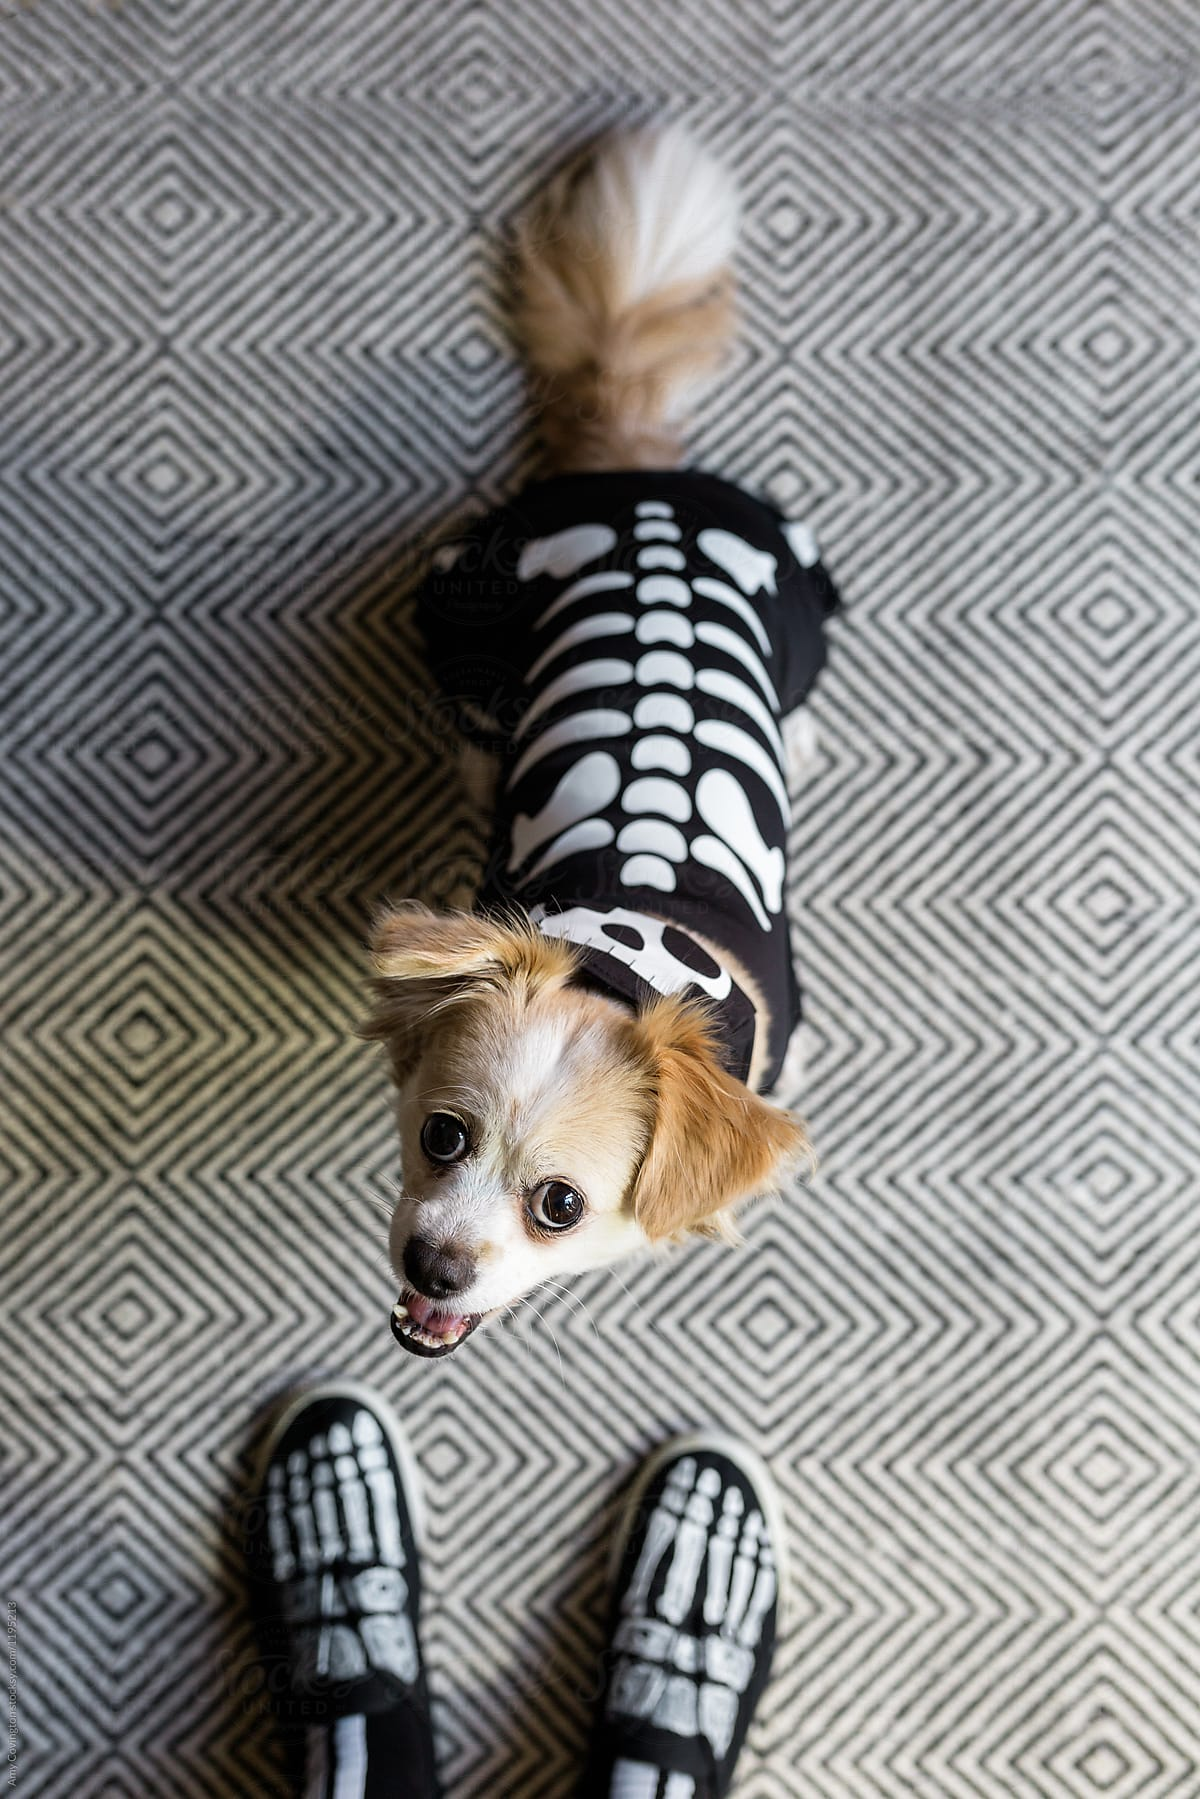 A Cute Dog Dressed Up As A Skeleton For Halloween Stocksy United